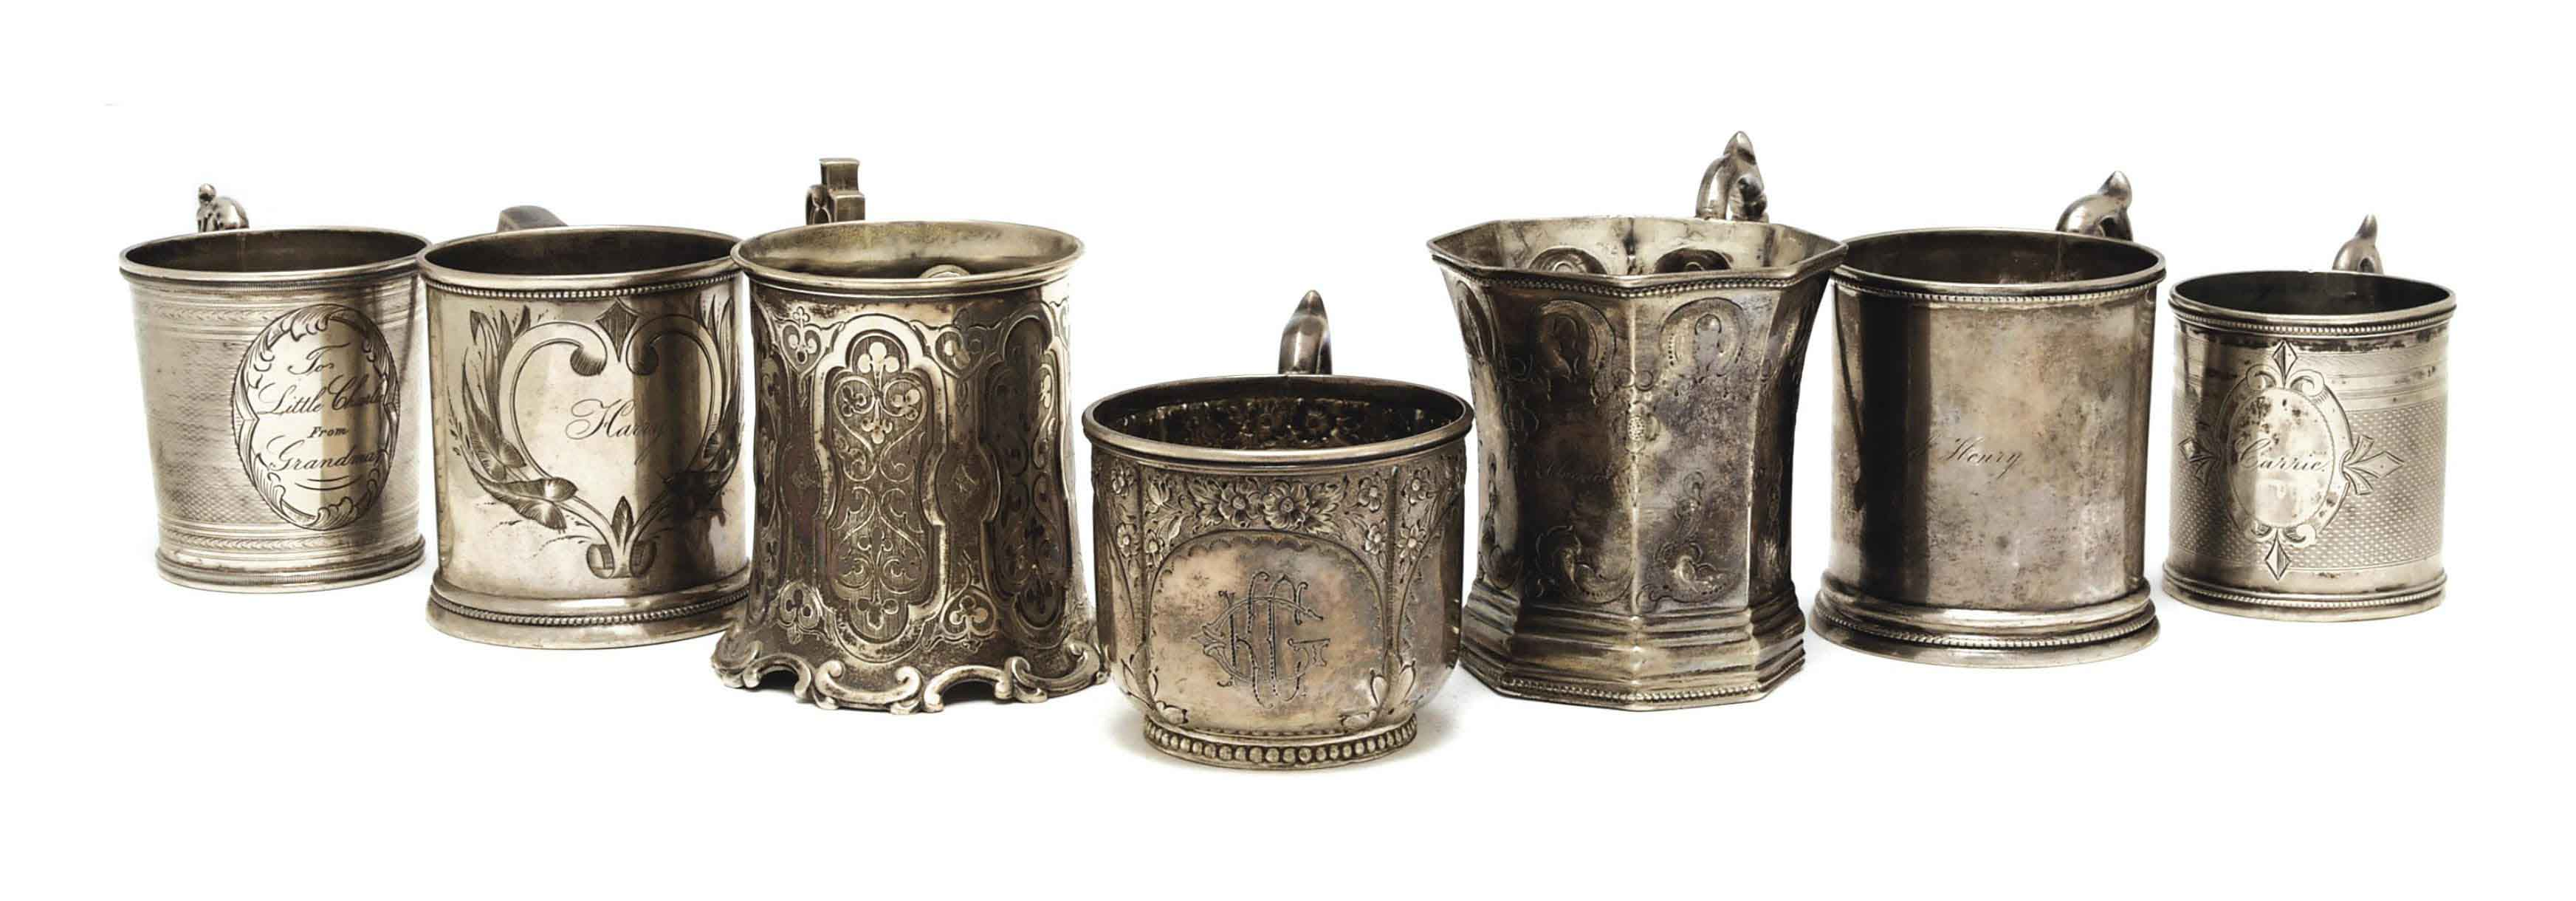 SIXTEEN AMERICAN SILVER CHRISTENING CUPS,